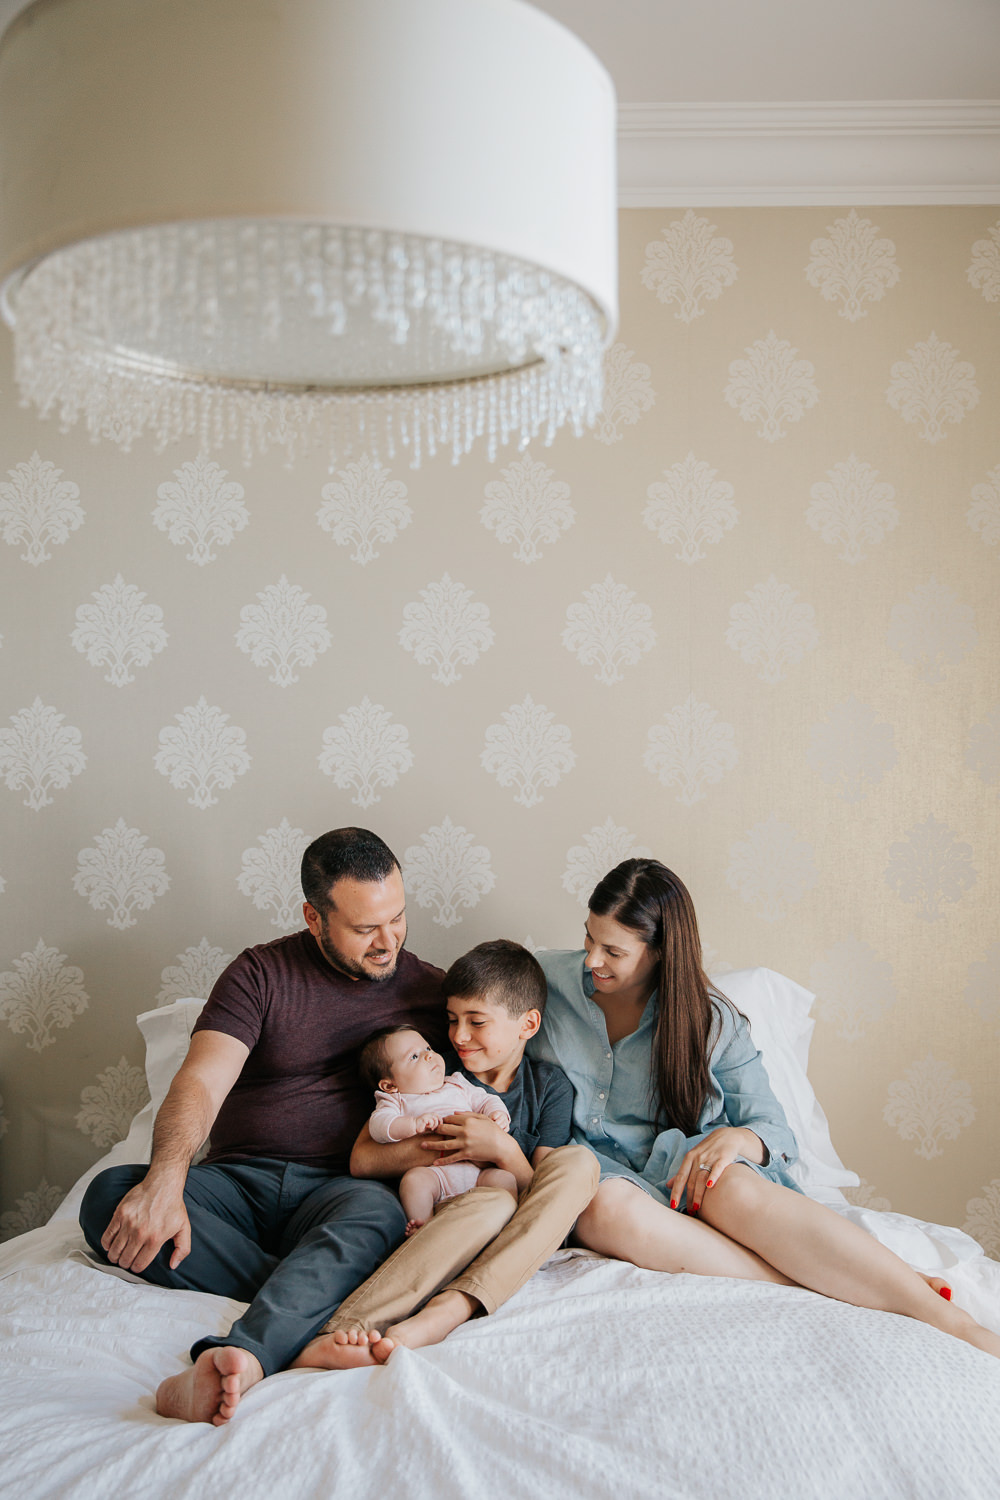 family of four sitting on bed, 9 year old boy holding 2 month old baby sister in pink onesie as mom and dad snuggled next to them -Barrie Lifestyle Photography